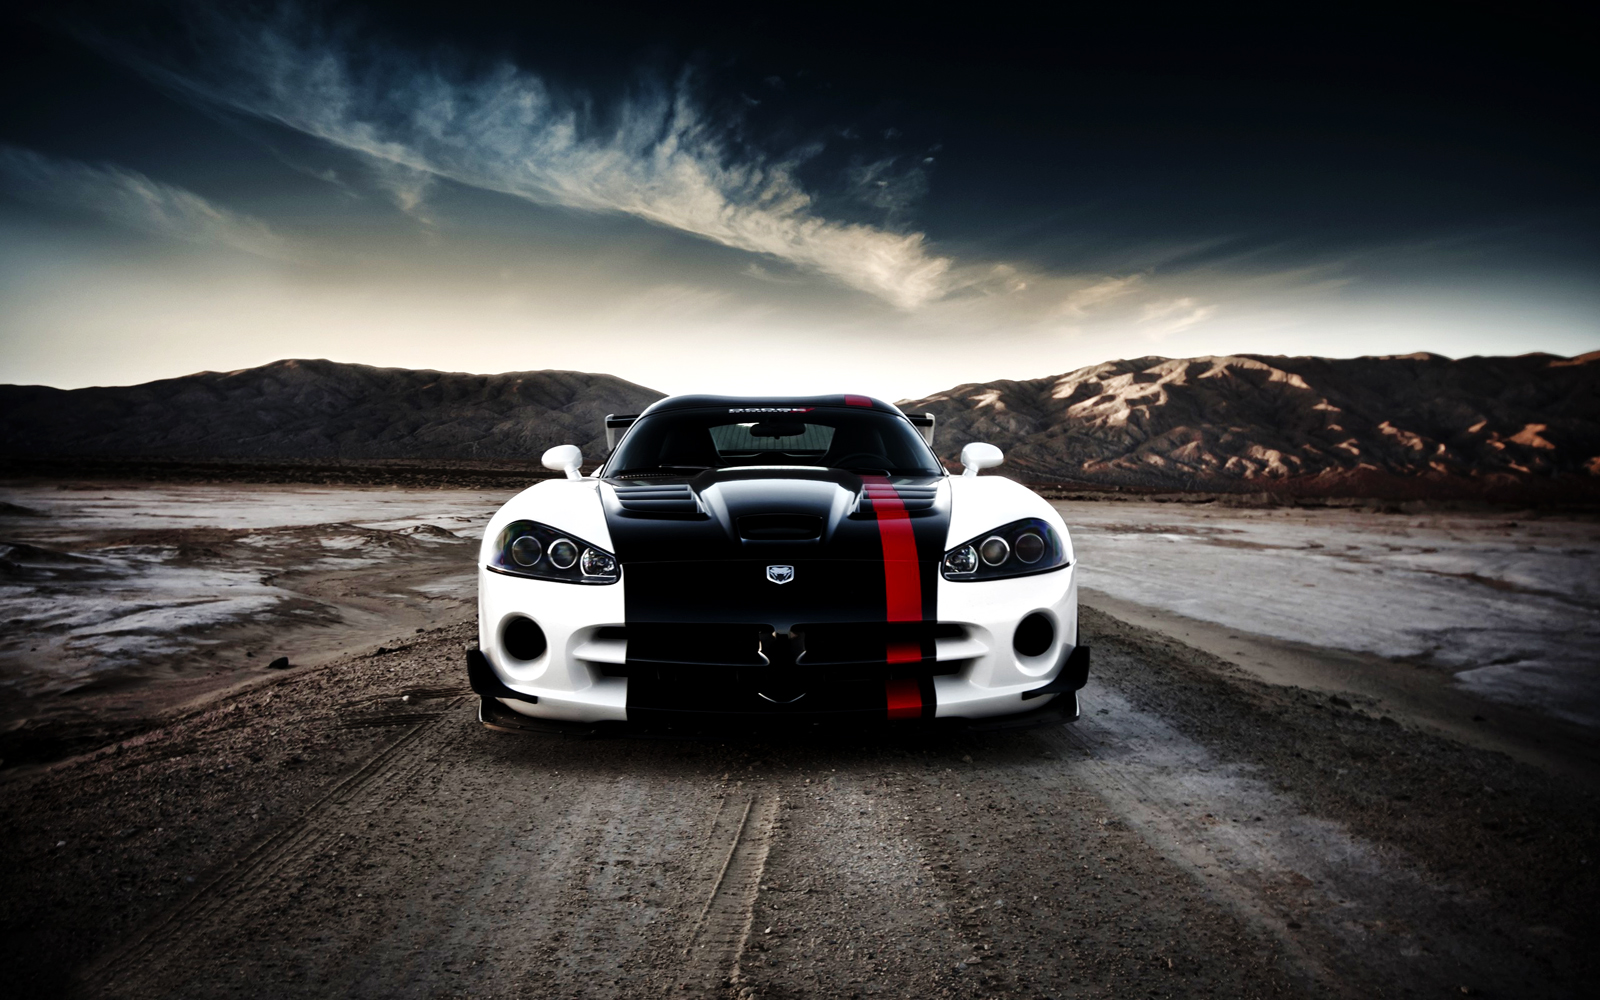 White Dodge Viper Acr HD Wallpapers | Desktop Wallpapers